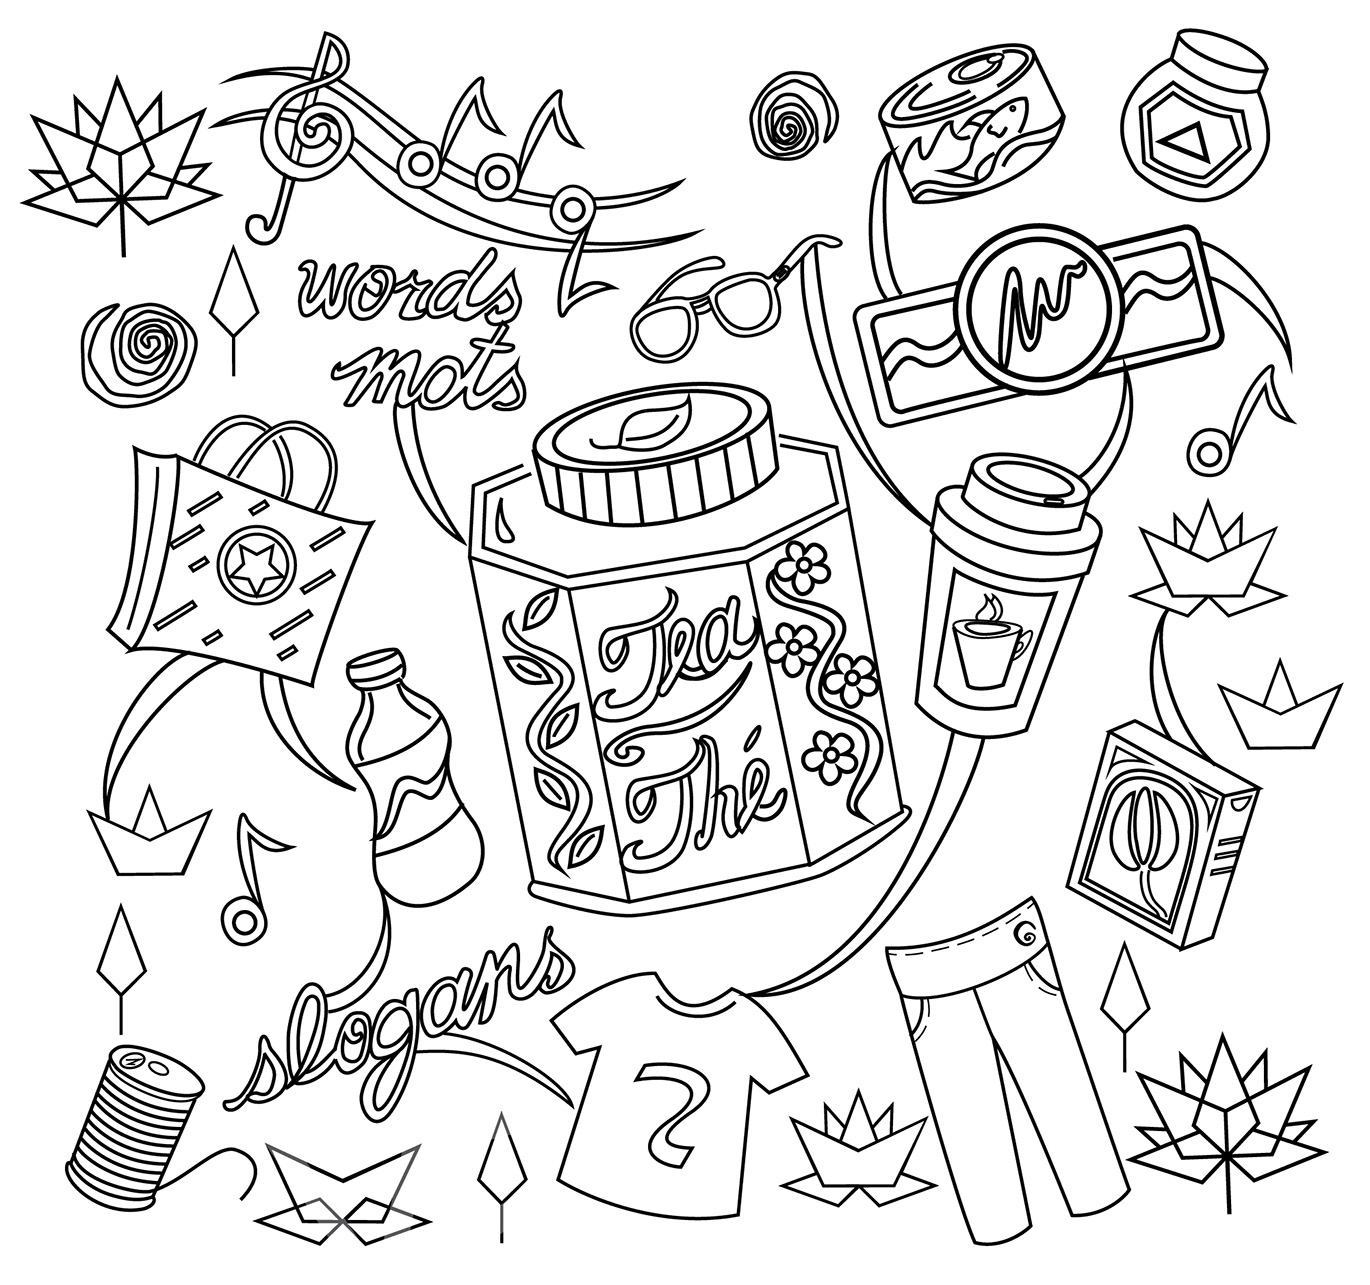 A book of canadian innovation canadian intellectual property office colouring page featuring sample items that could be trademarked and a description of trademarks biocorpaavc Images